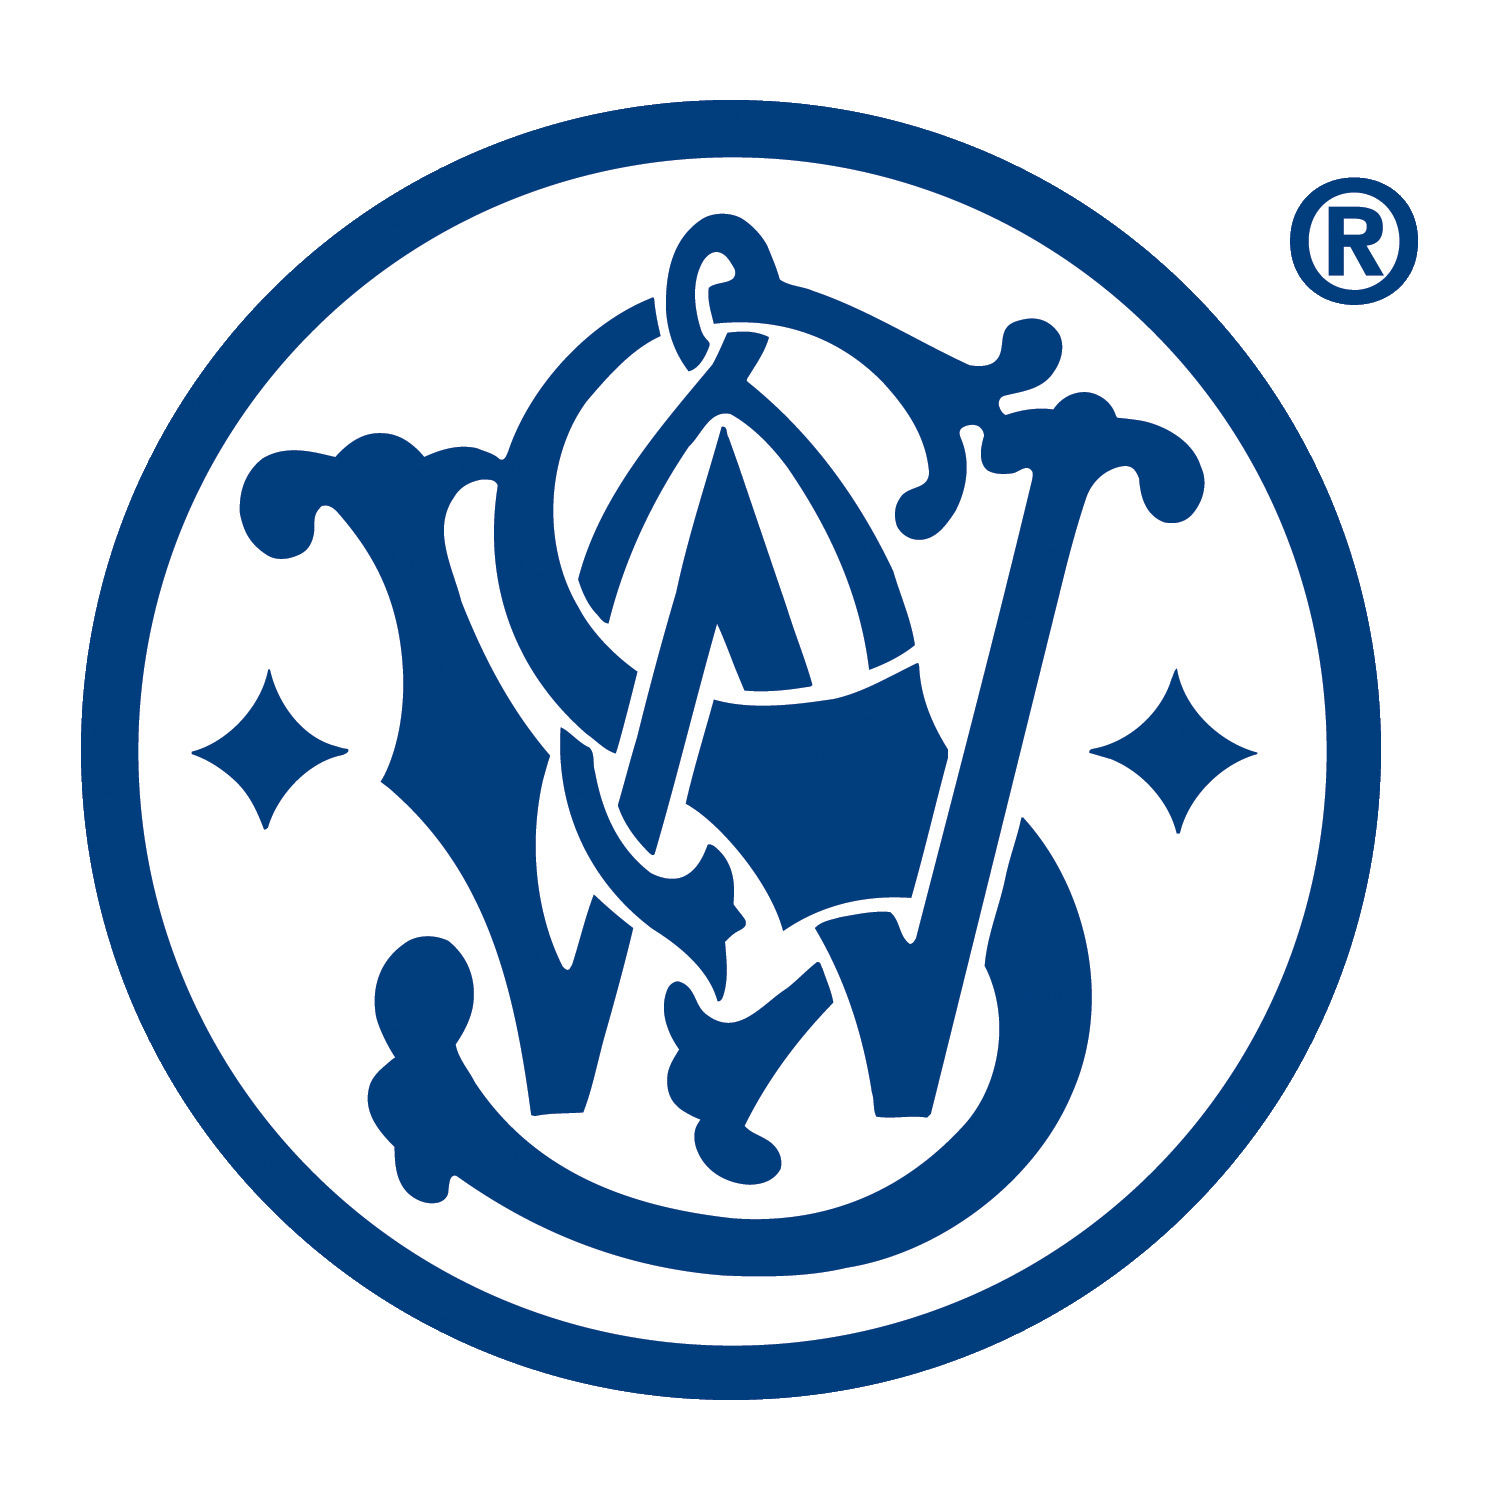 Smith & wesson logo png. Firearms and accessories from